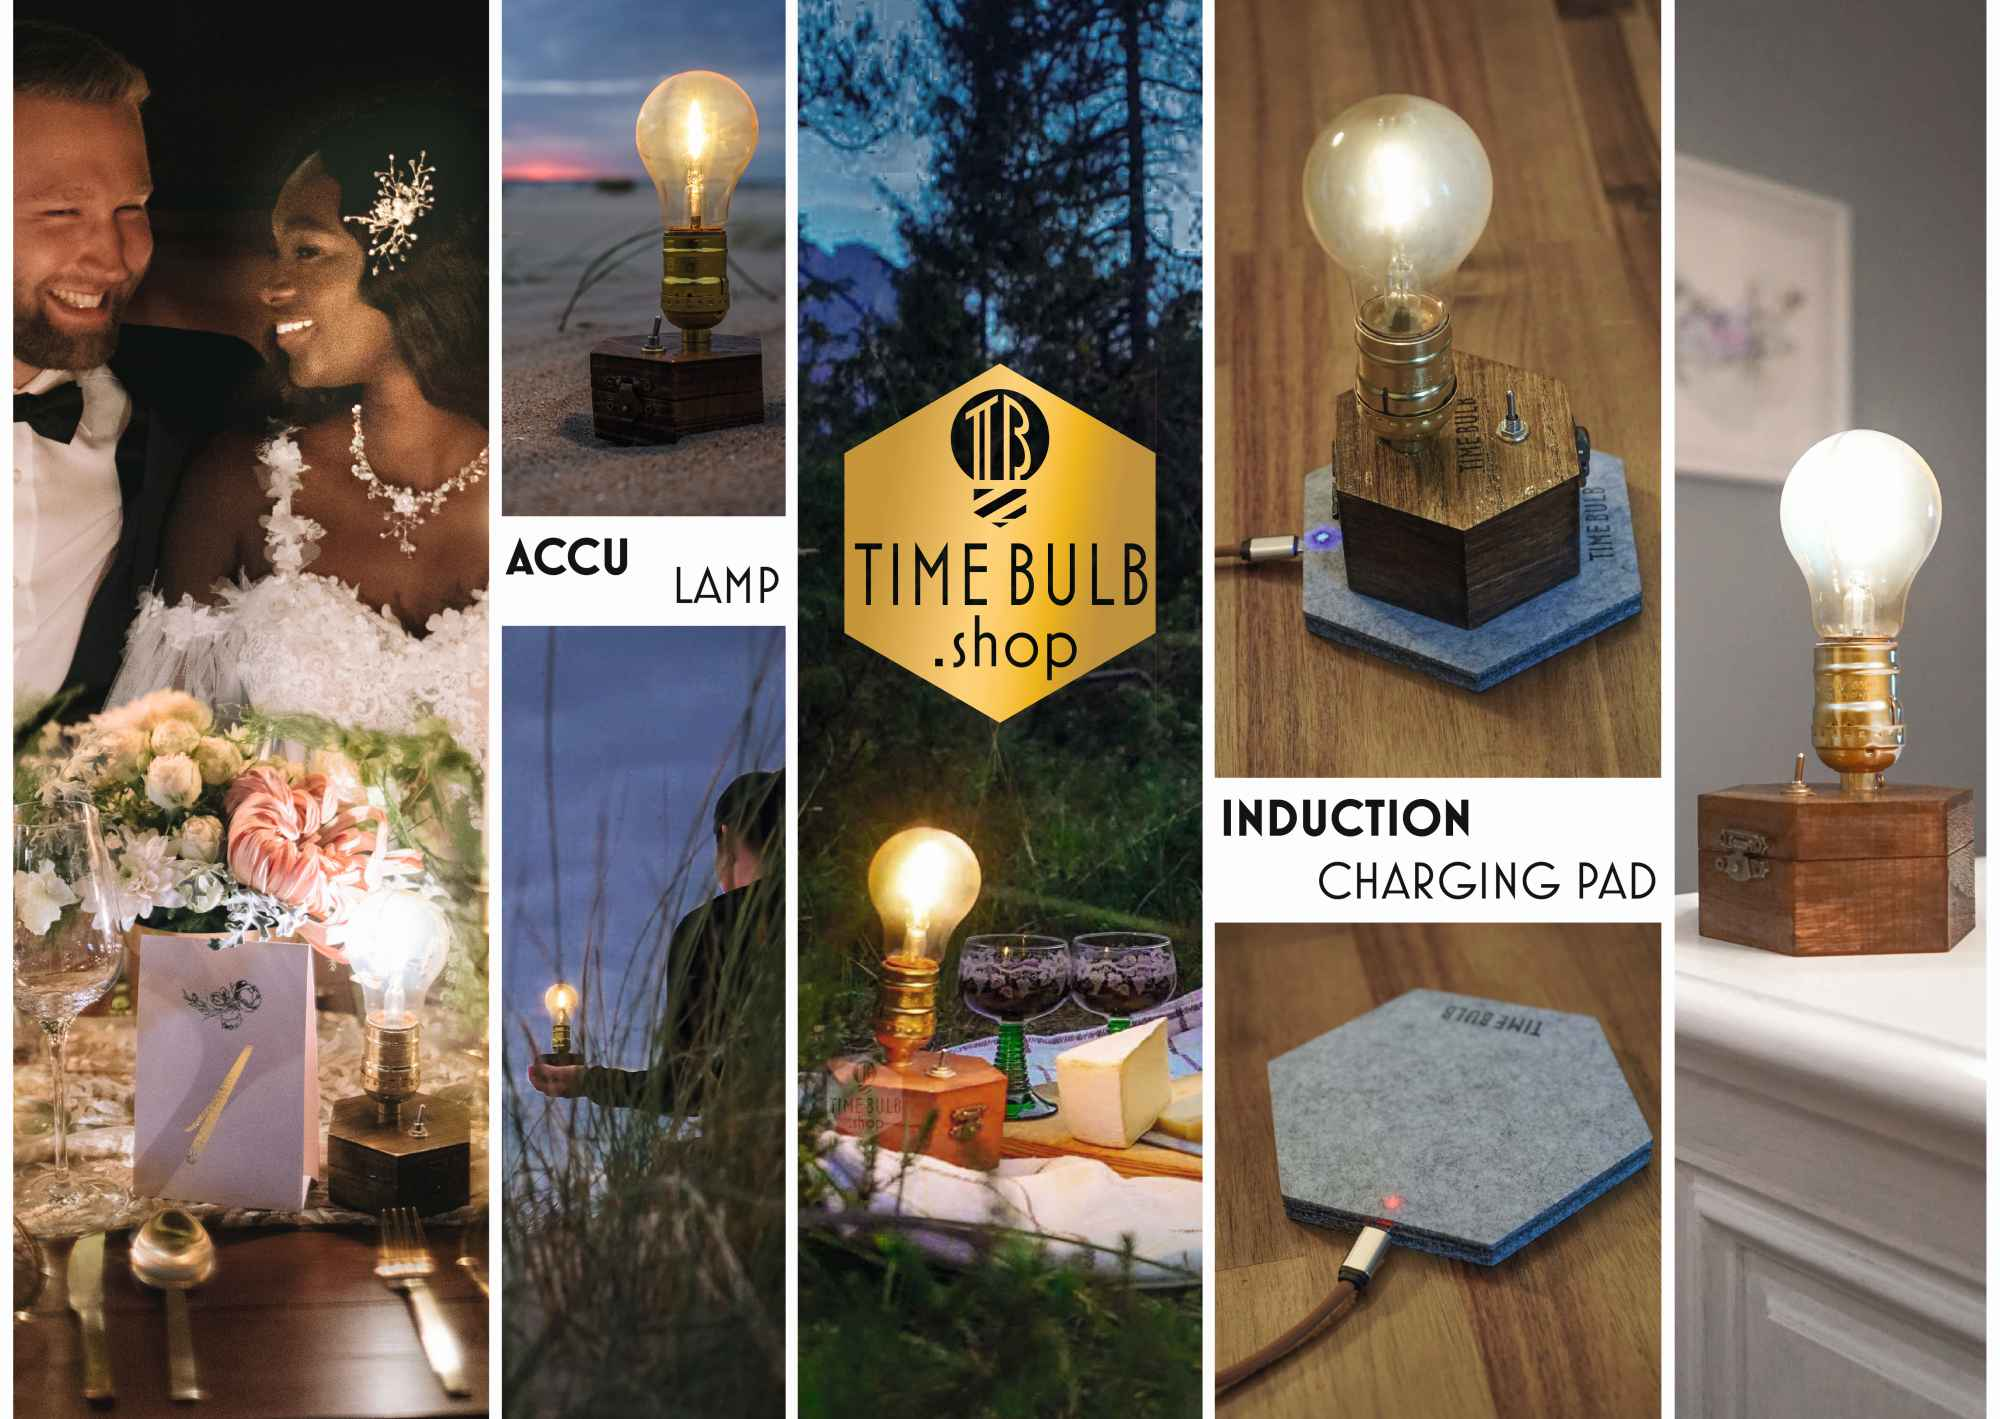 TimeBulb-wireless-charging-table-lamp-cordless-edison-bulb-light-wedding-trends-2021-2022-qi-induction-charger-rechargeable-acculamp-kabellose-akkulampe-decoration-interior-design-candlelight